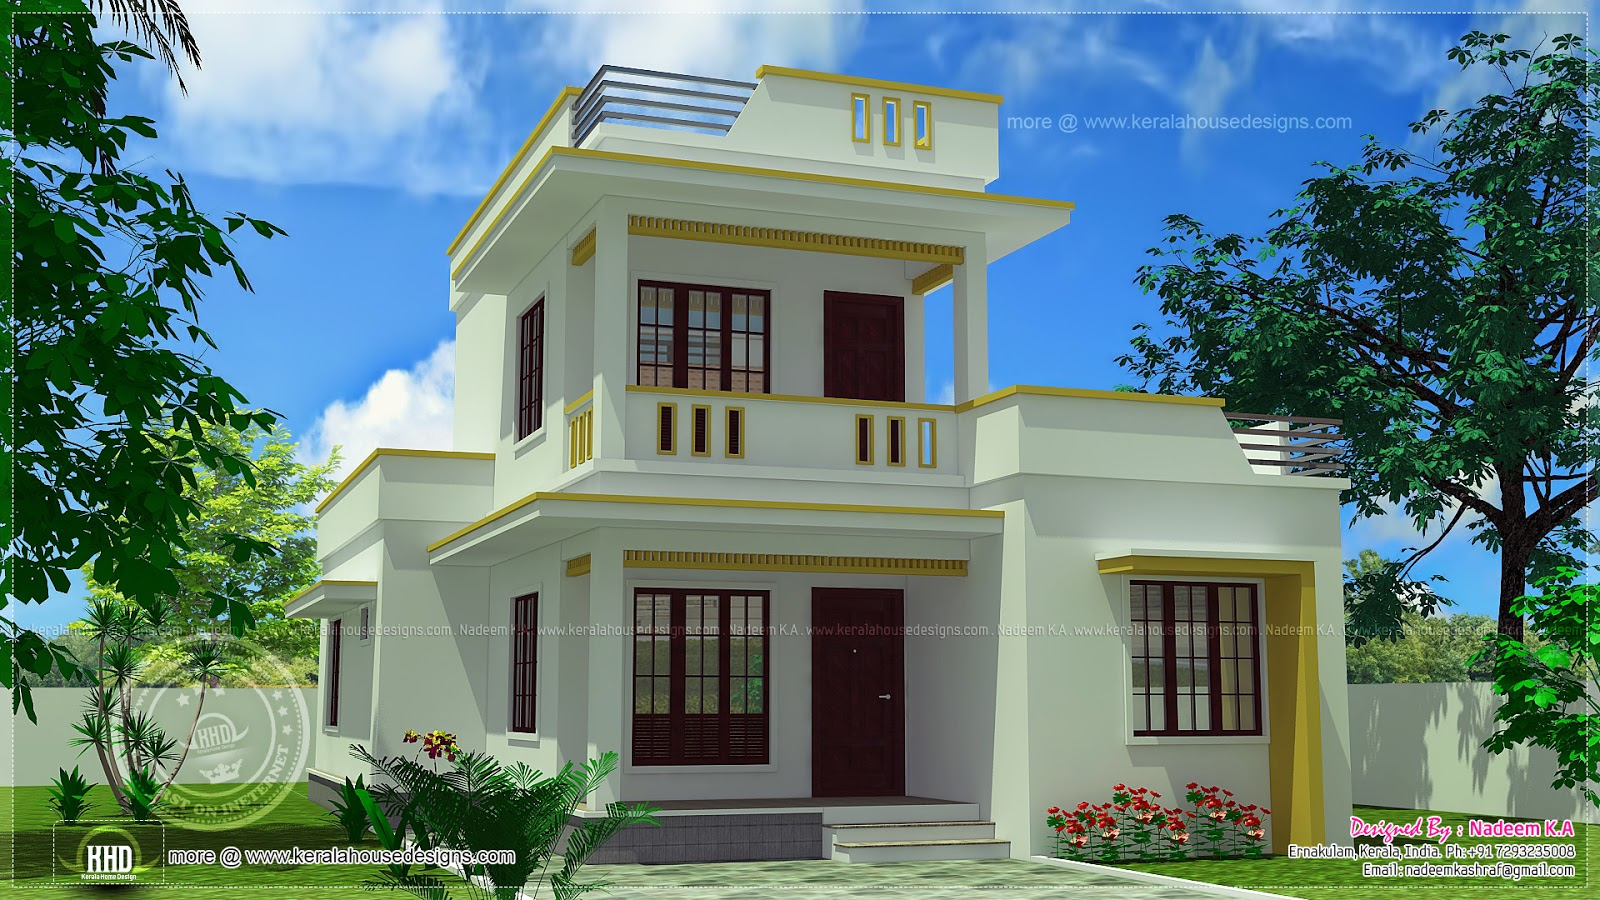 August 2013 kerala home design and floor plans Home layout